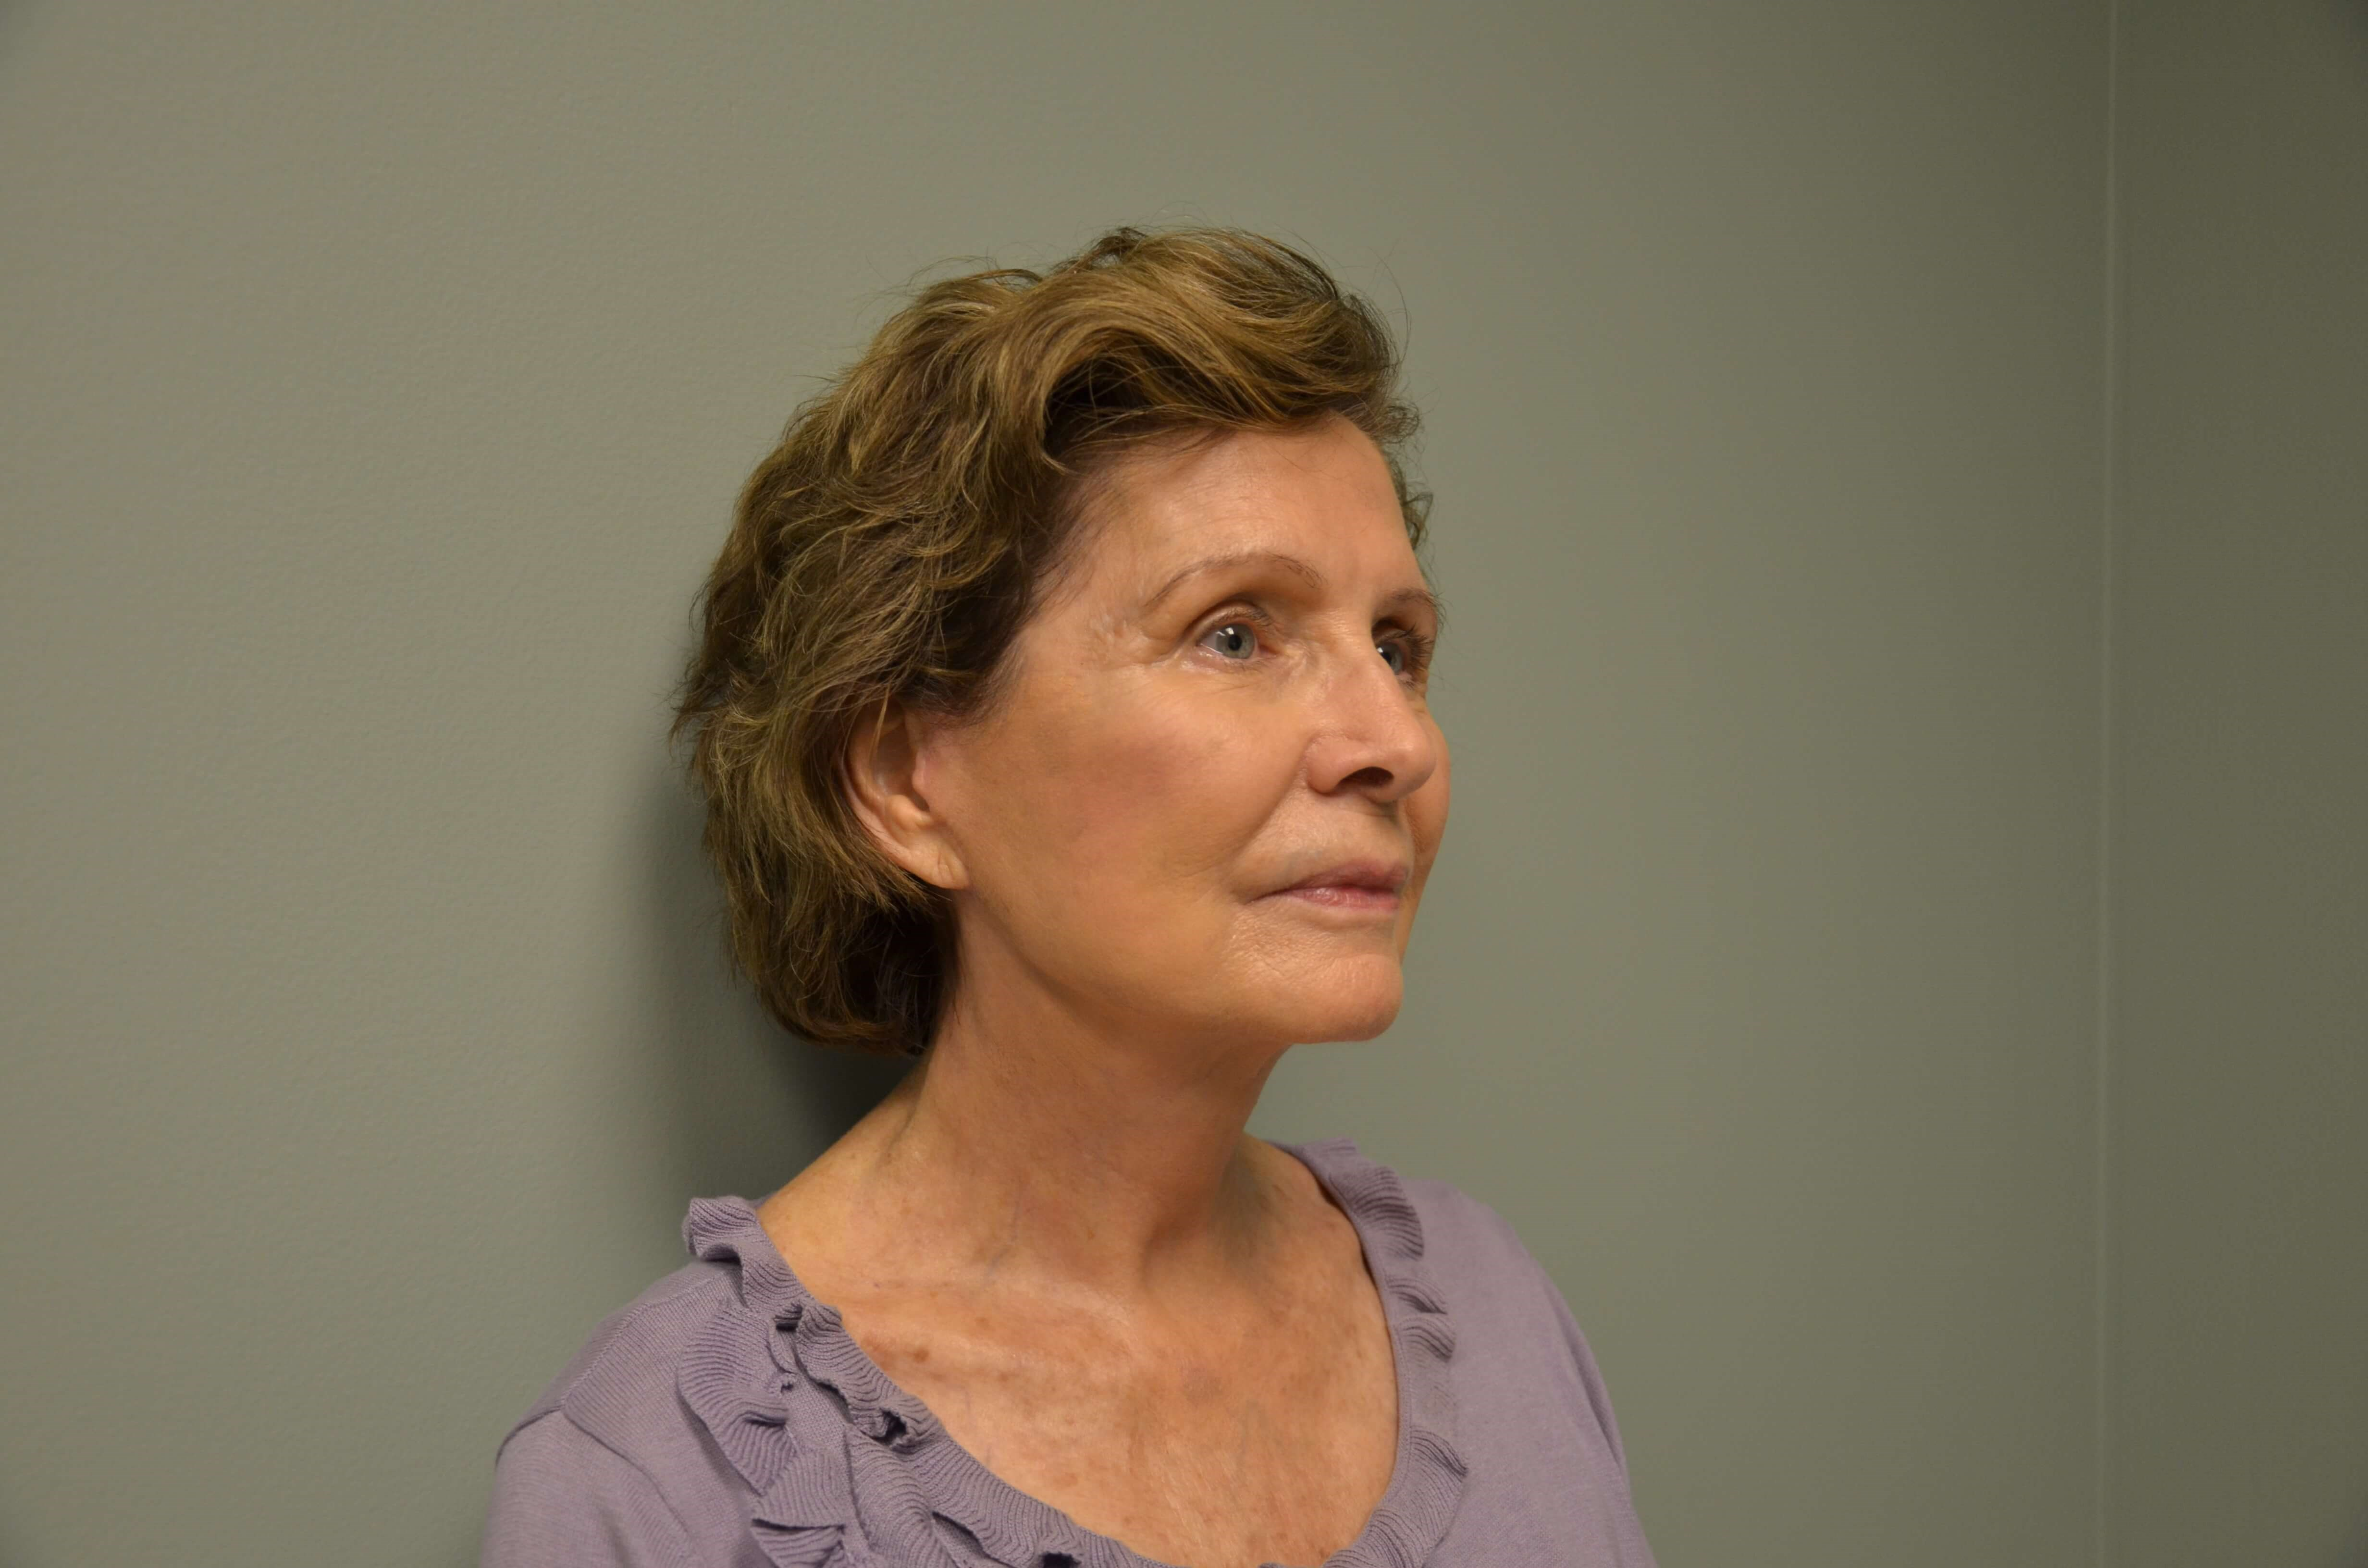 79 yo WF Completes Neck Lift After